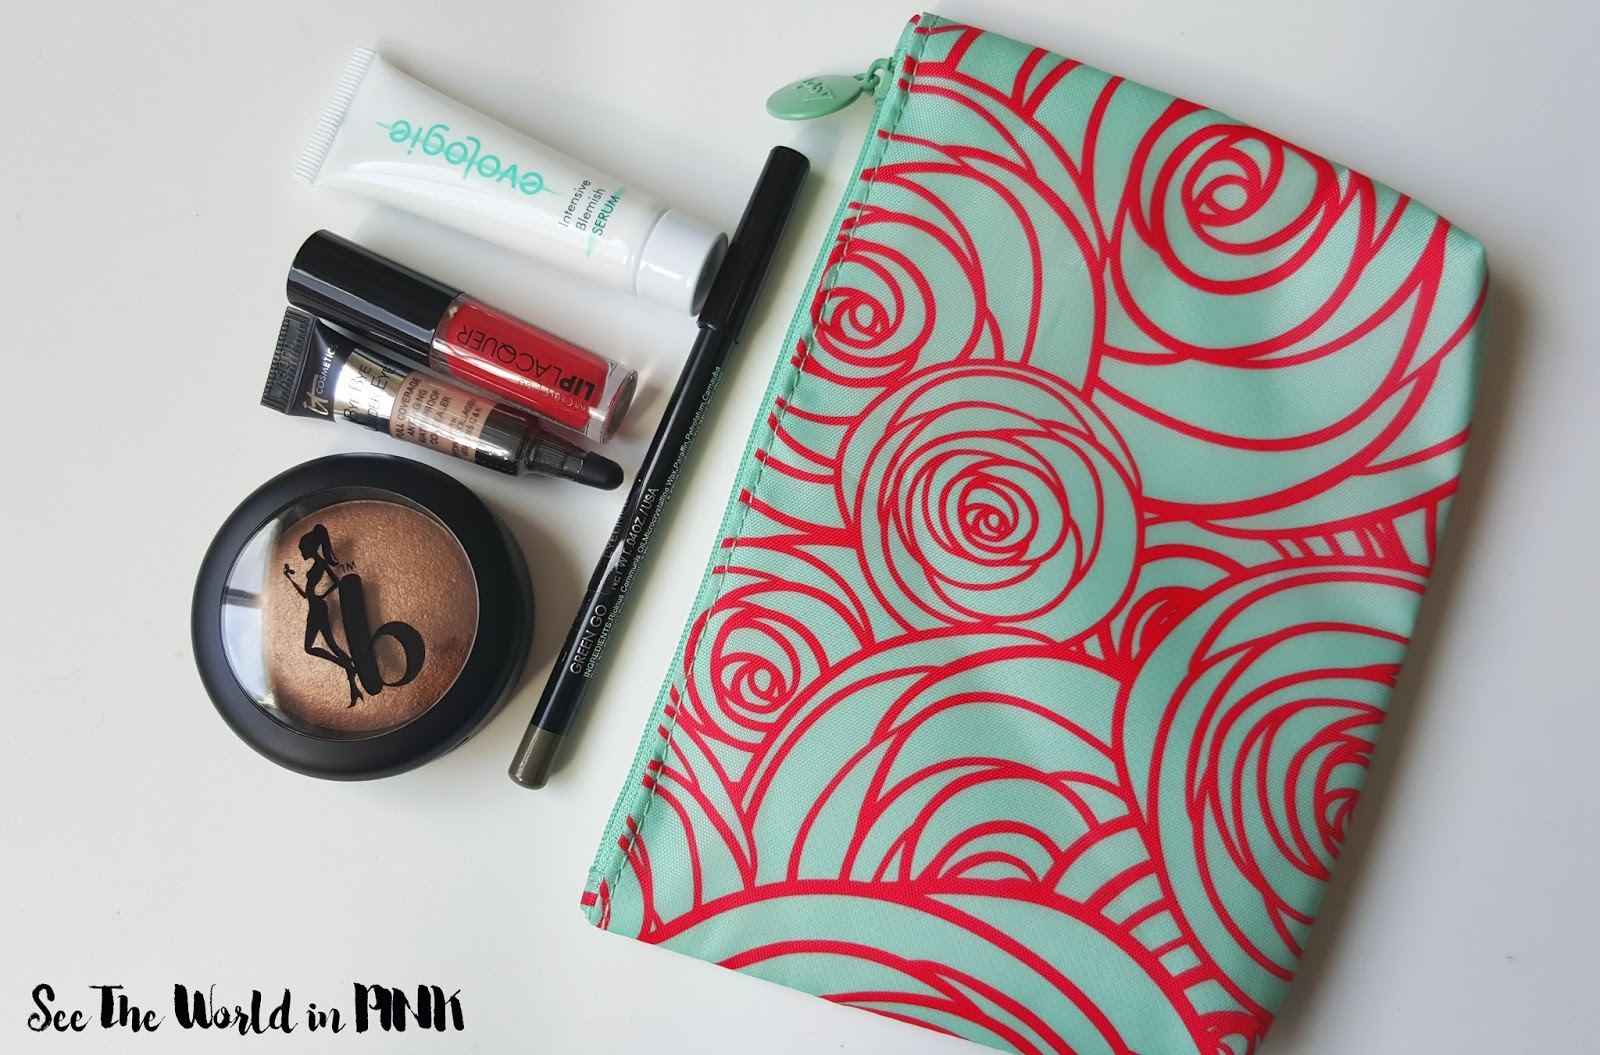 March 2016 Ipsy Glambag - Unboxing and Review